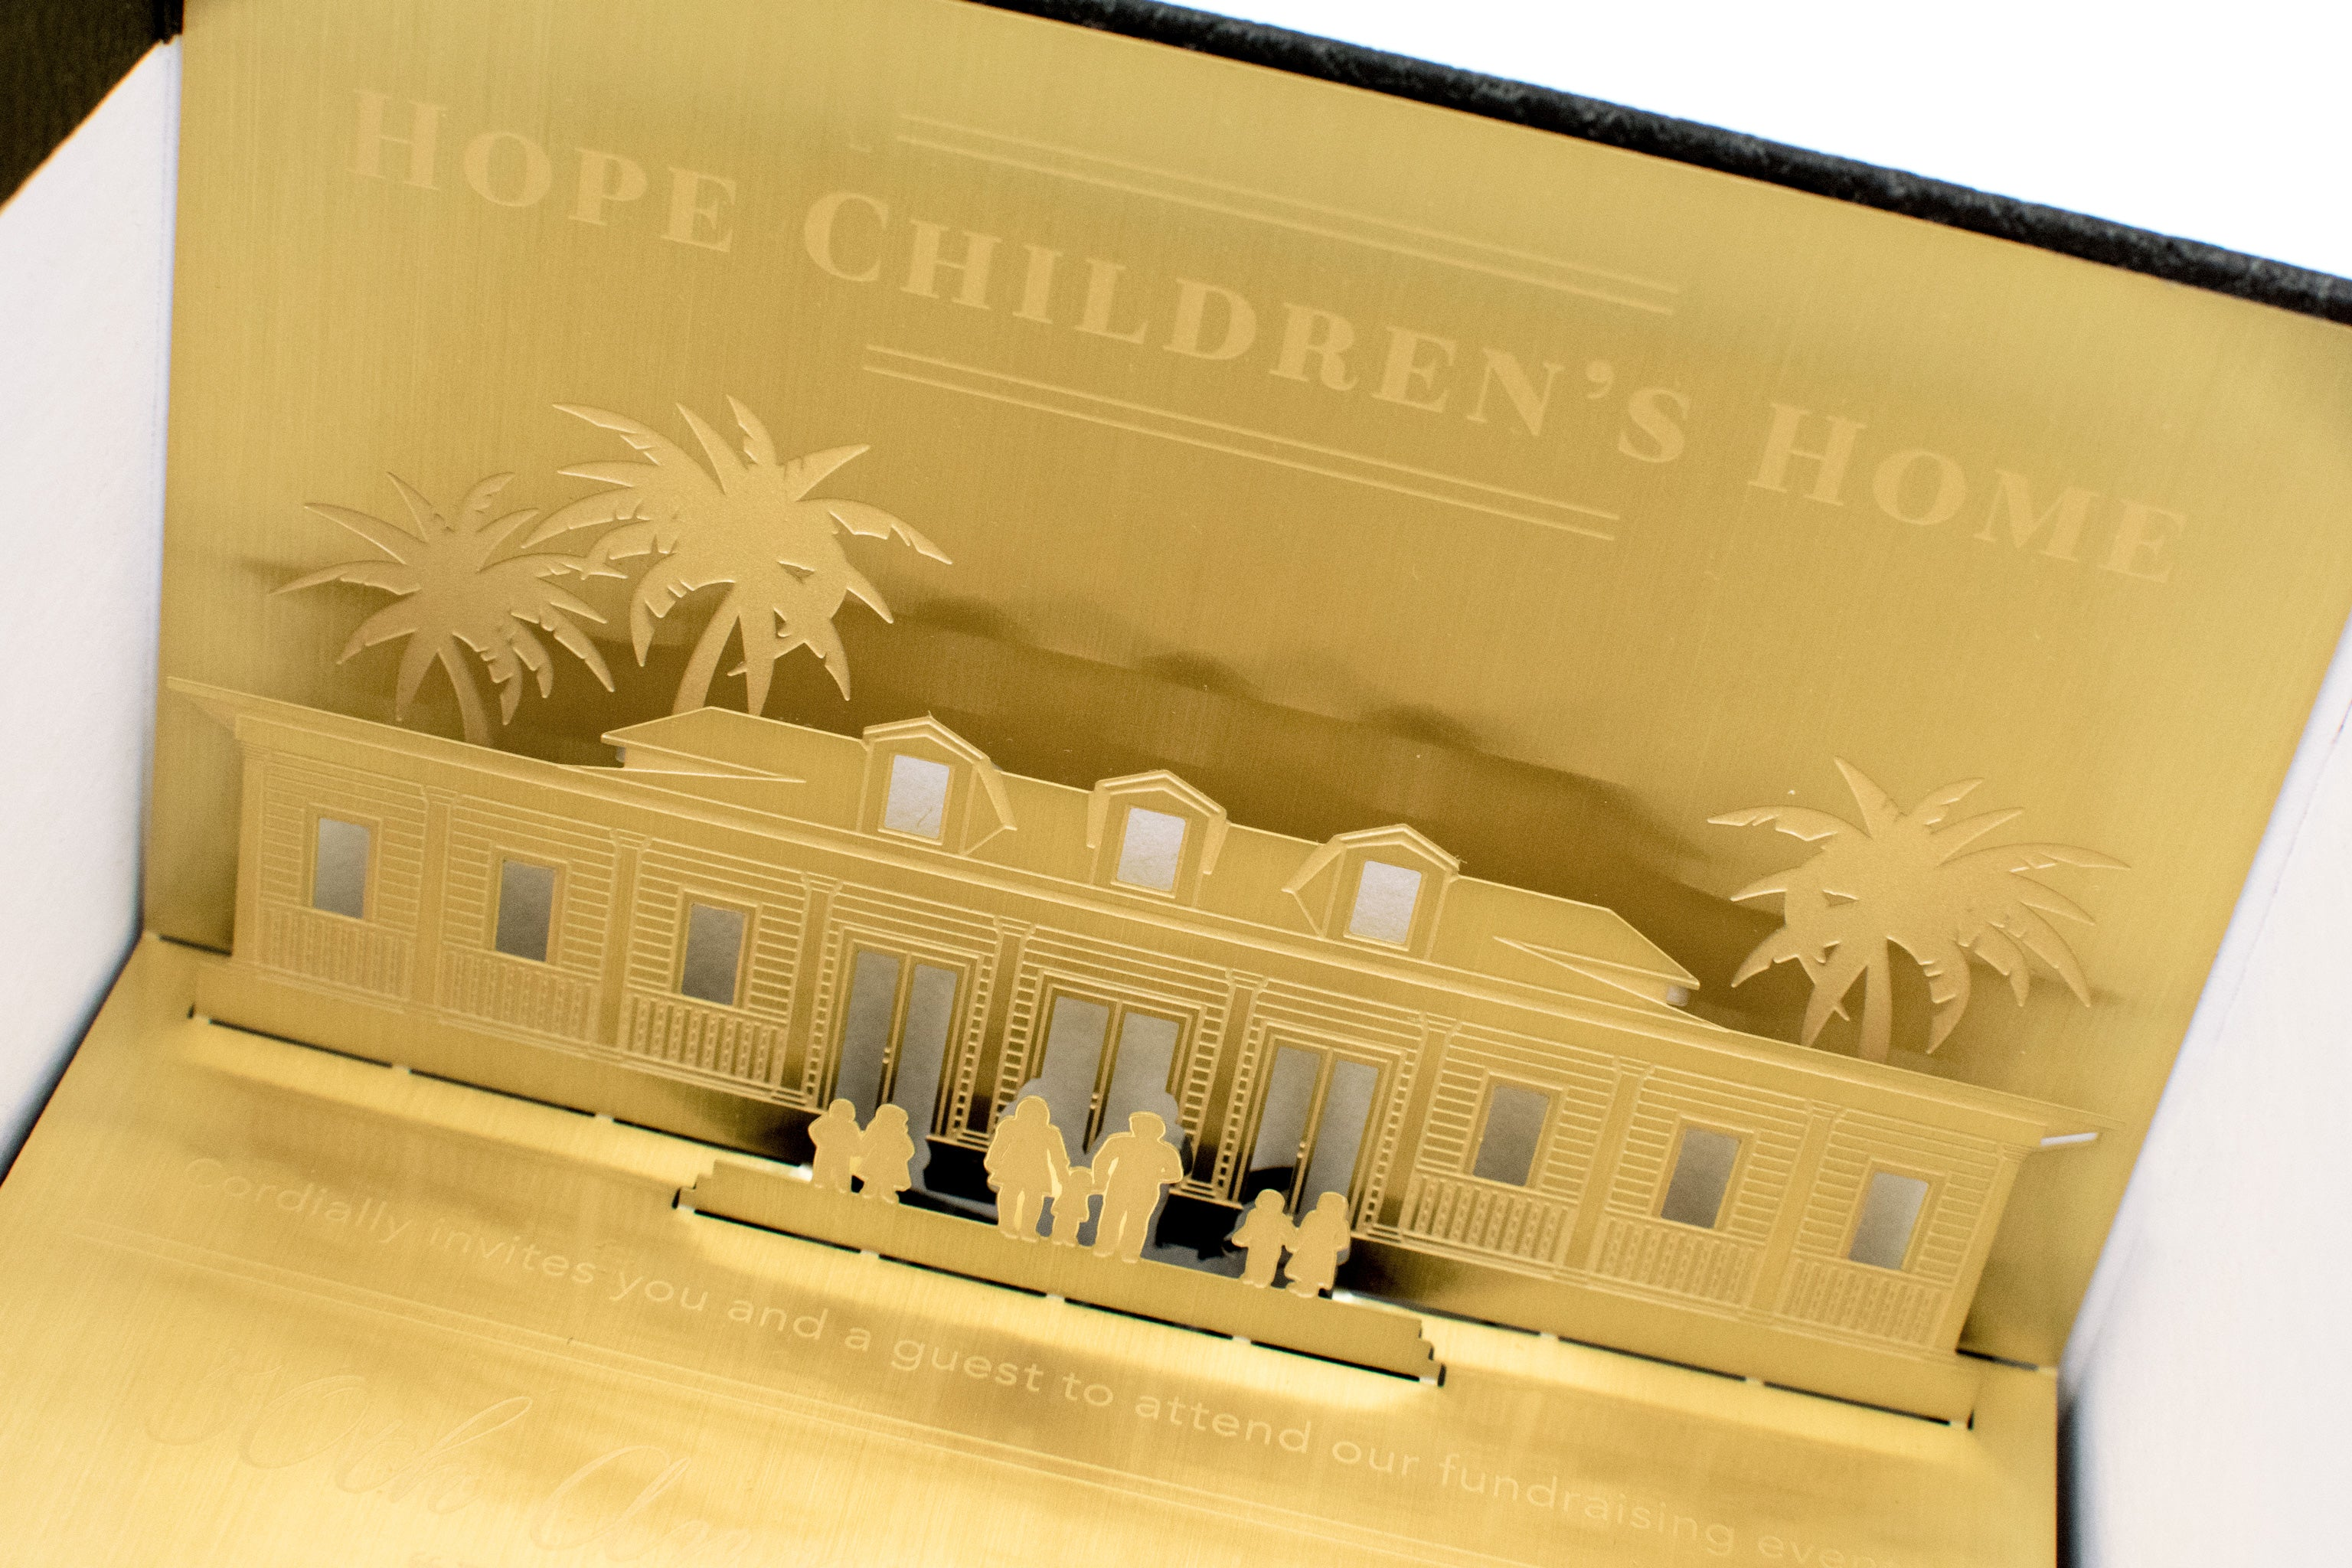 Hope Childrens Home Folded Gold Metal Fundraiser Invitation In Box4